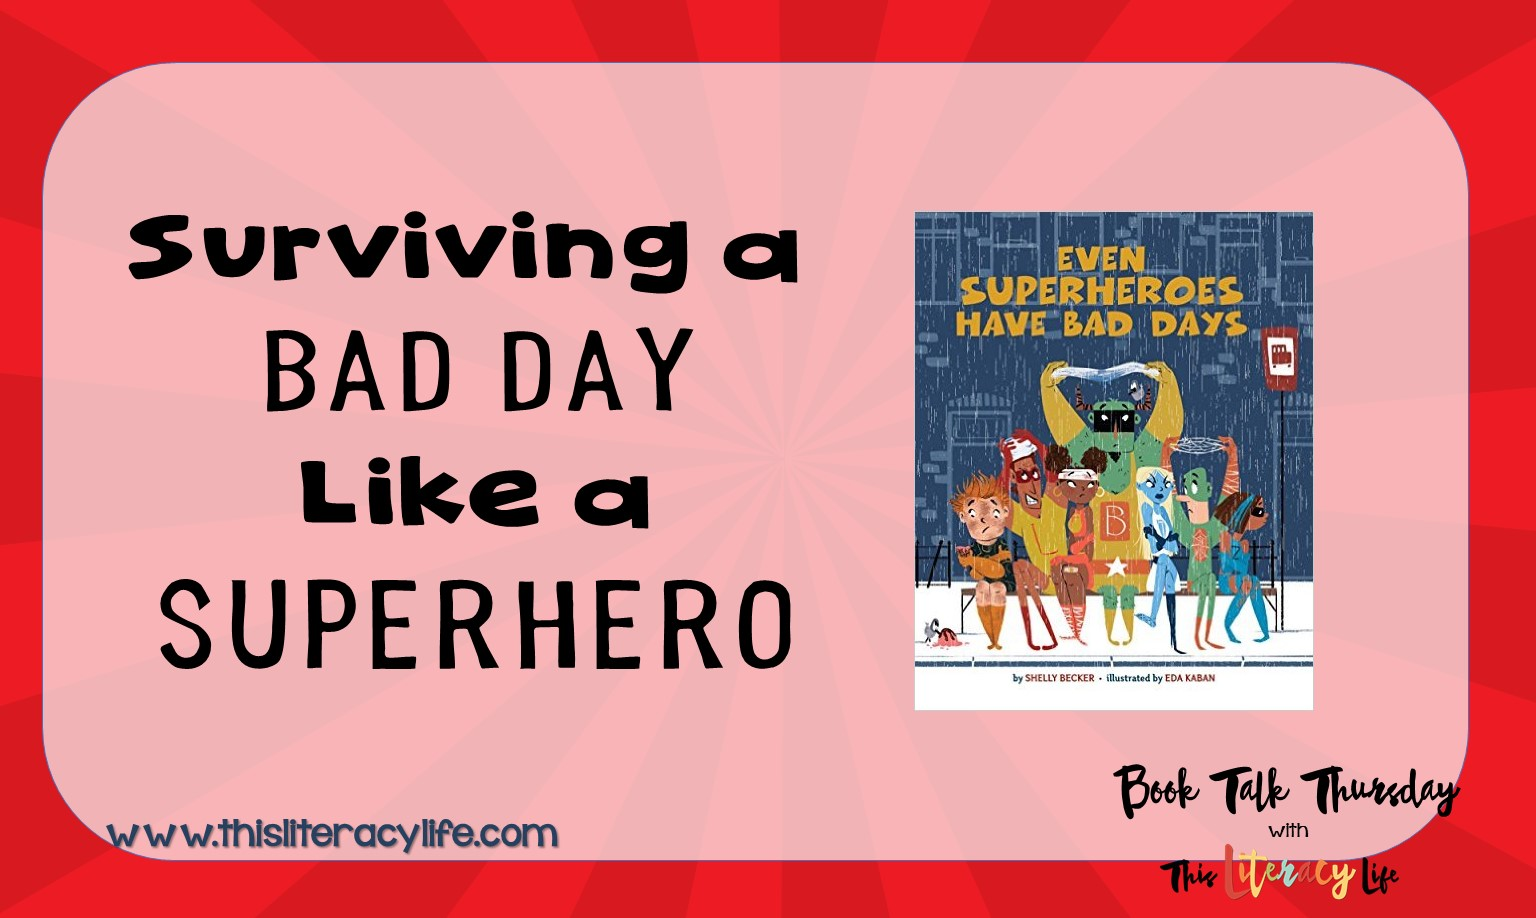 It's tough having a bad day, and even superheroes have them.  How do they cope with a bad day?